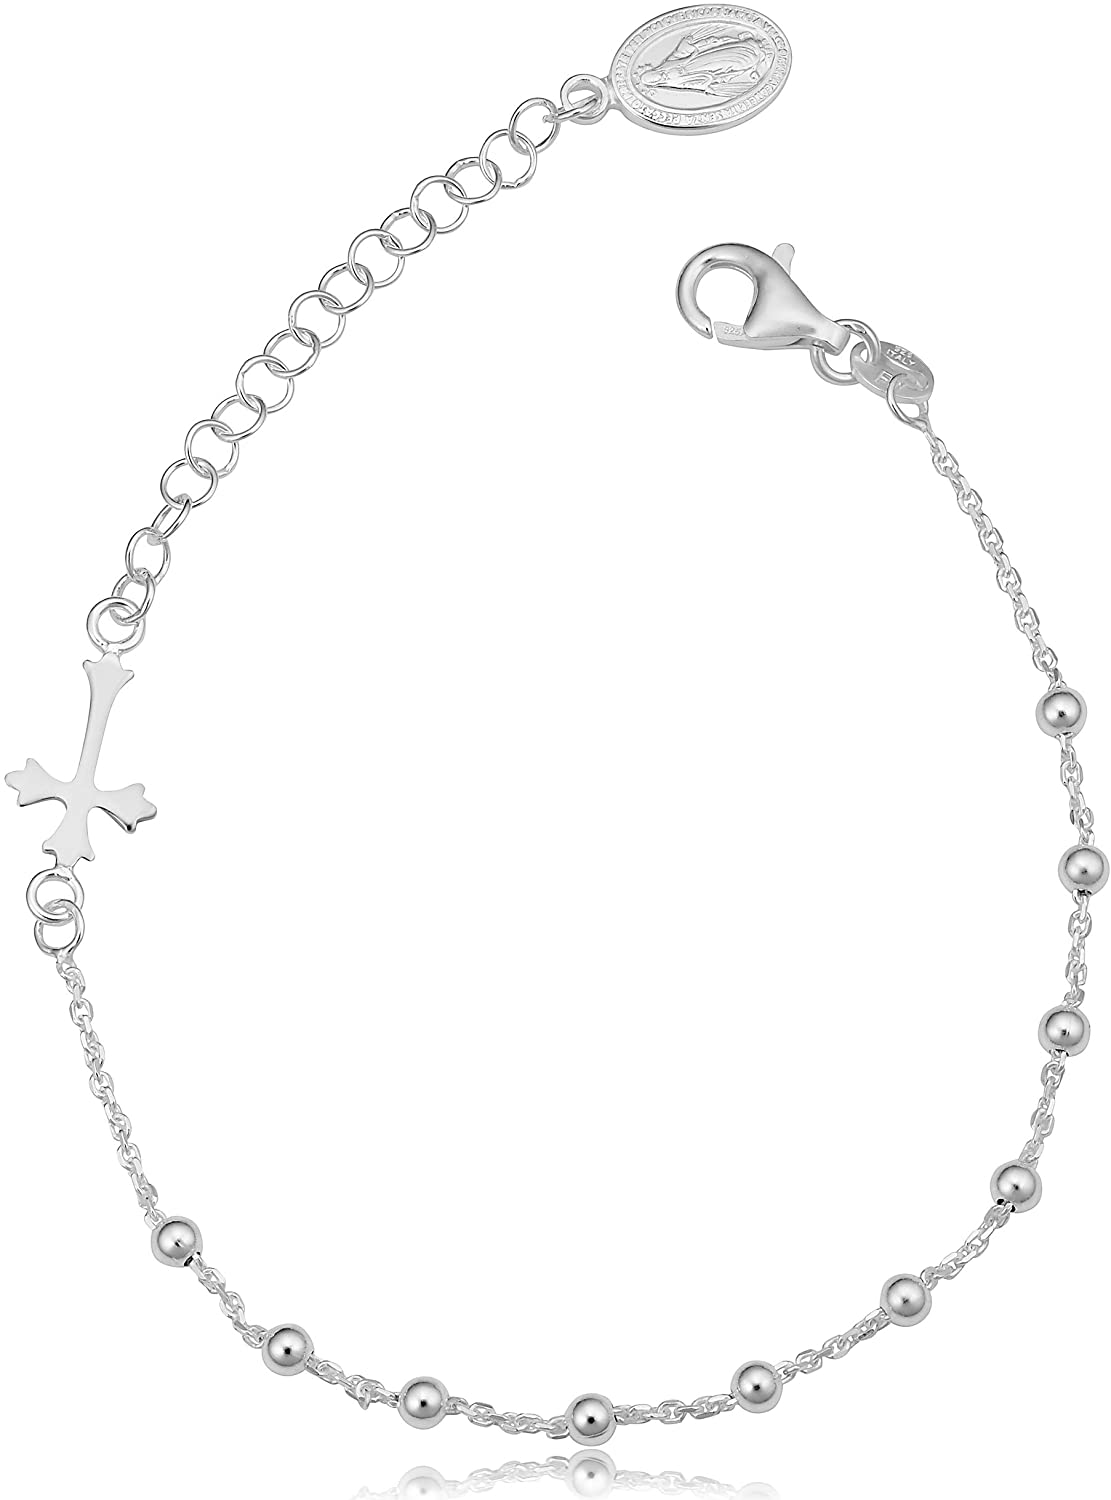 Kooljewelry Sterling Silver Saturn Rosary Adjustable Length Bracelet (adjusts from 7 to 8.5 inch)